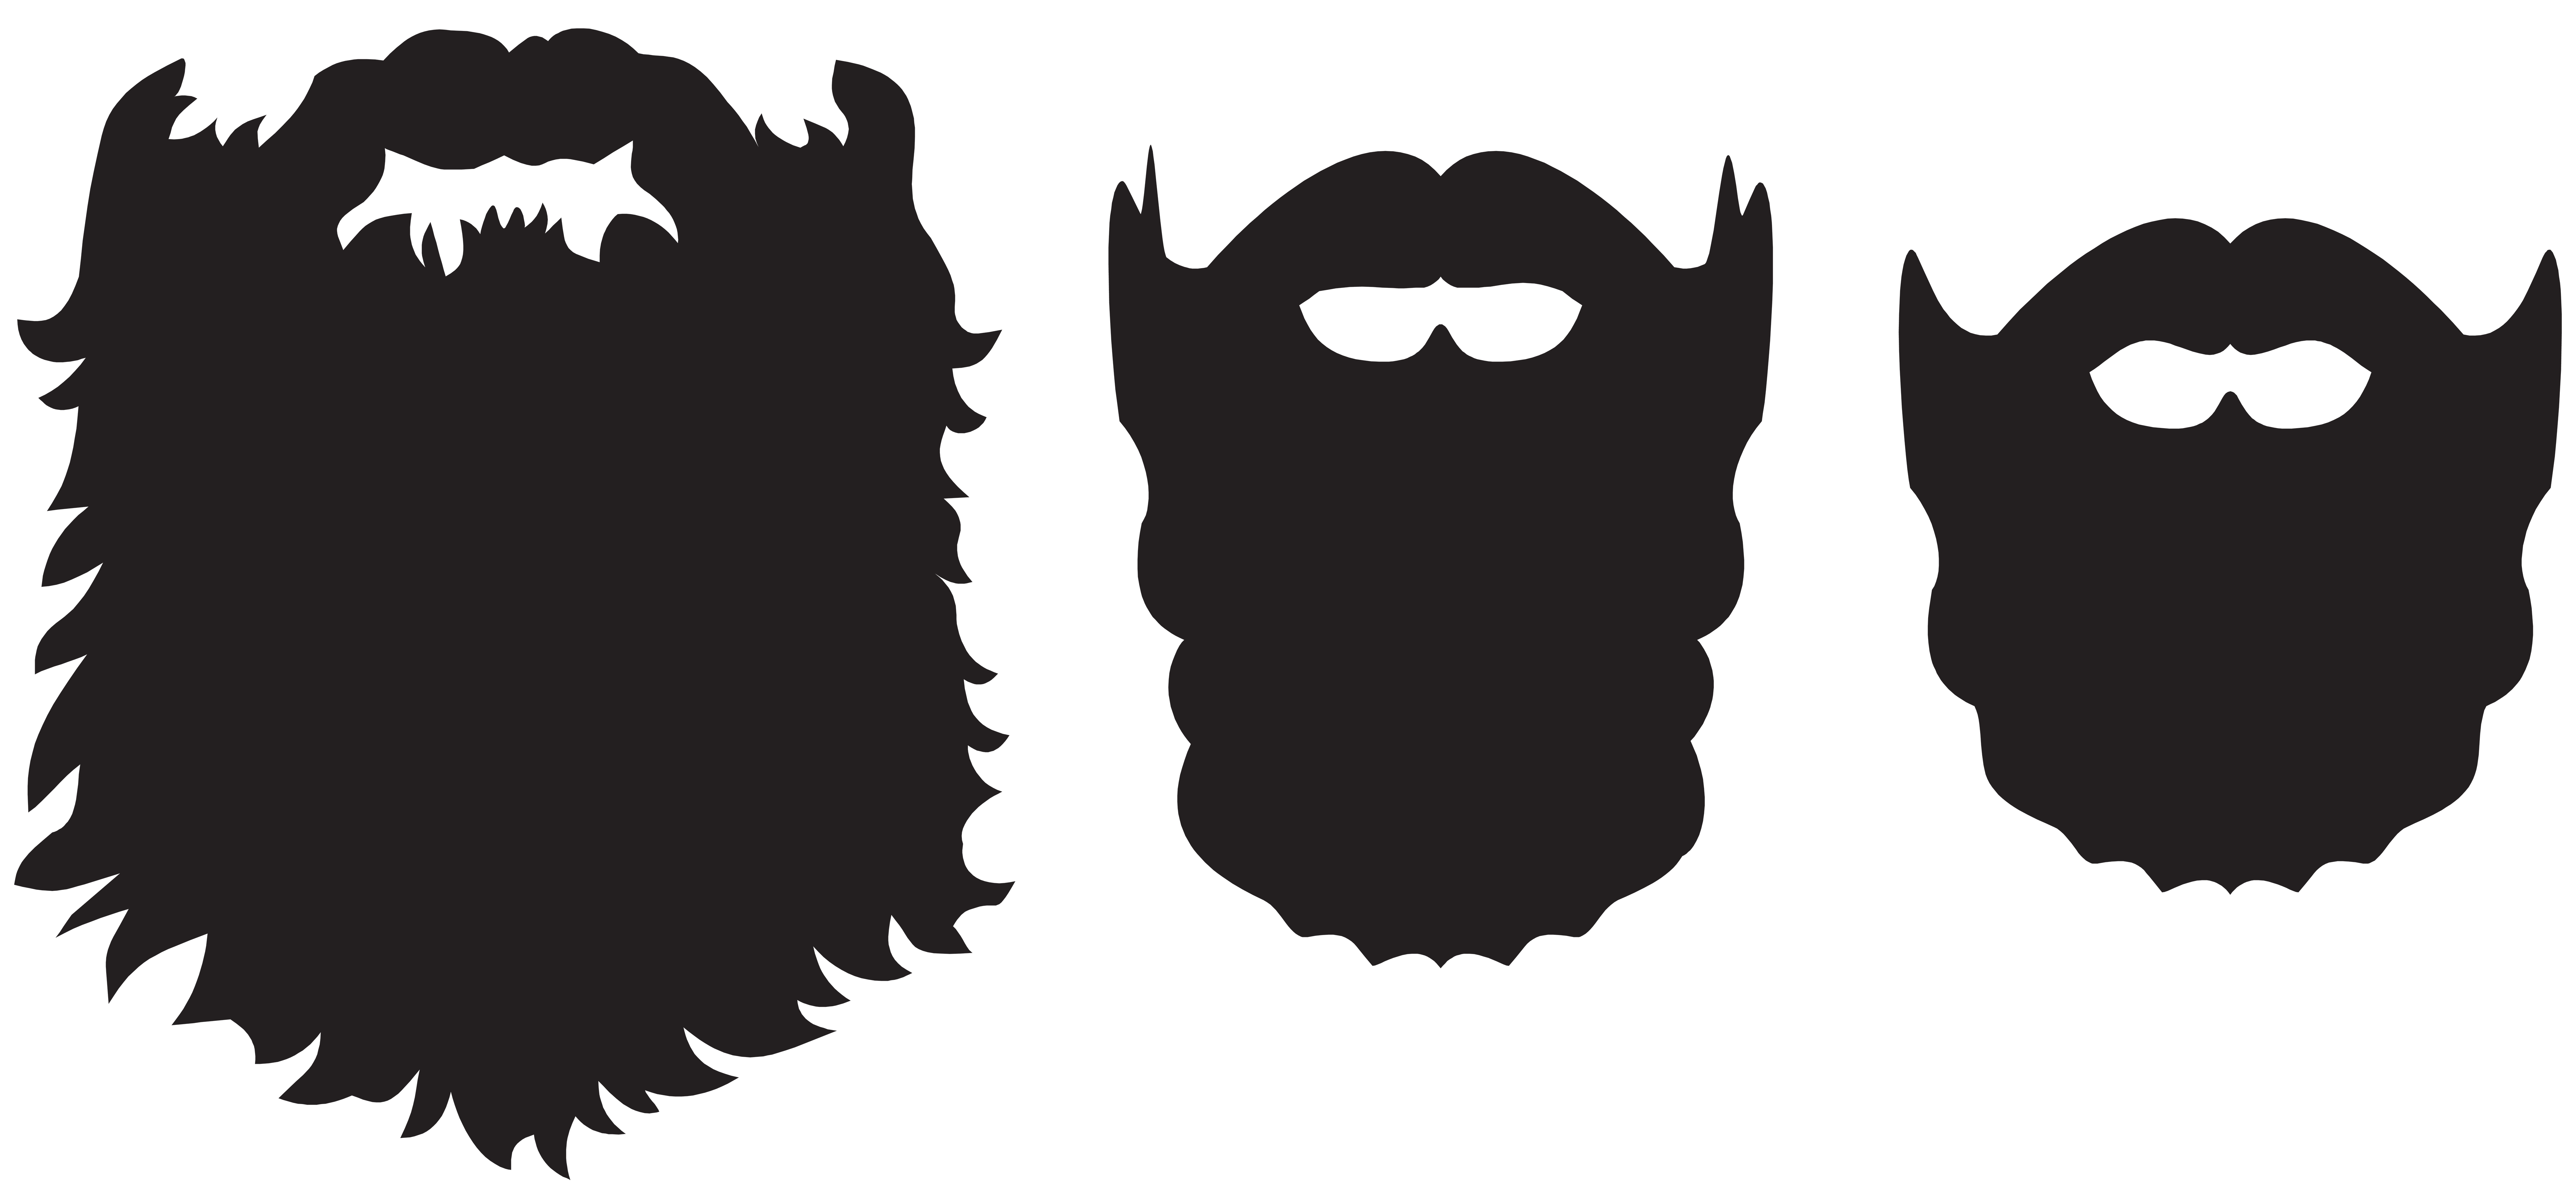 clipart free Beard clipart png. Set clip art image